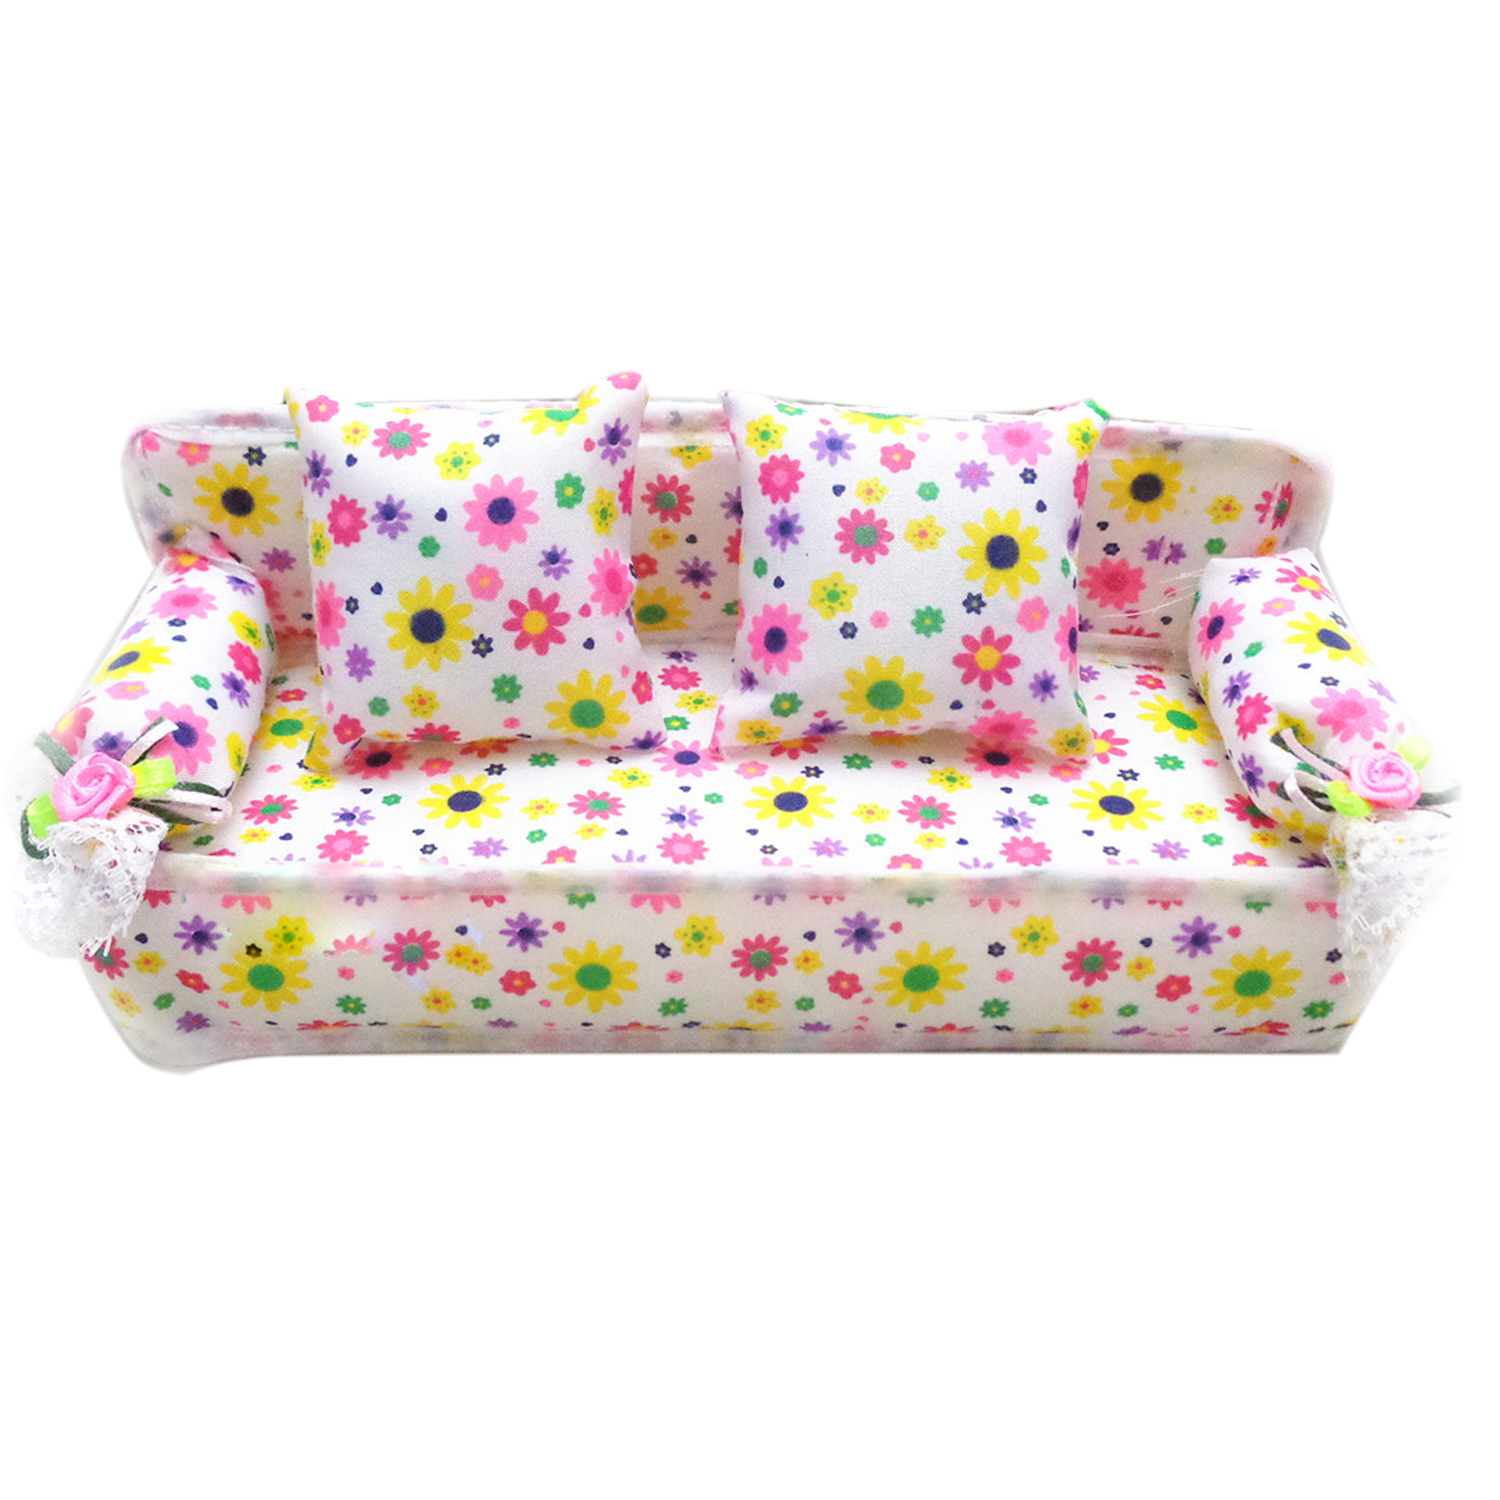 Kawaii Cute Mini Miniature Furniture Flower Sofa Print Couch With 2 Cushions House Accessories For Barbie Doll Toy Children Gift